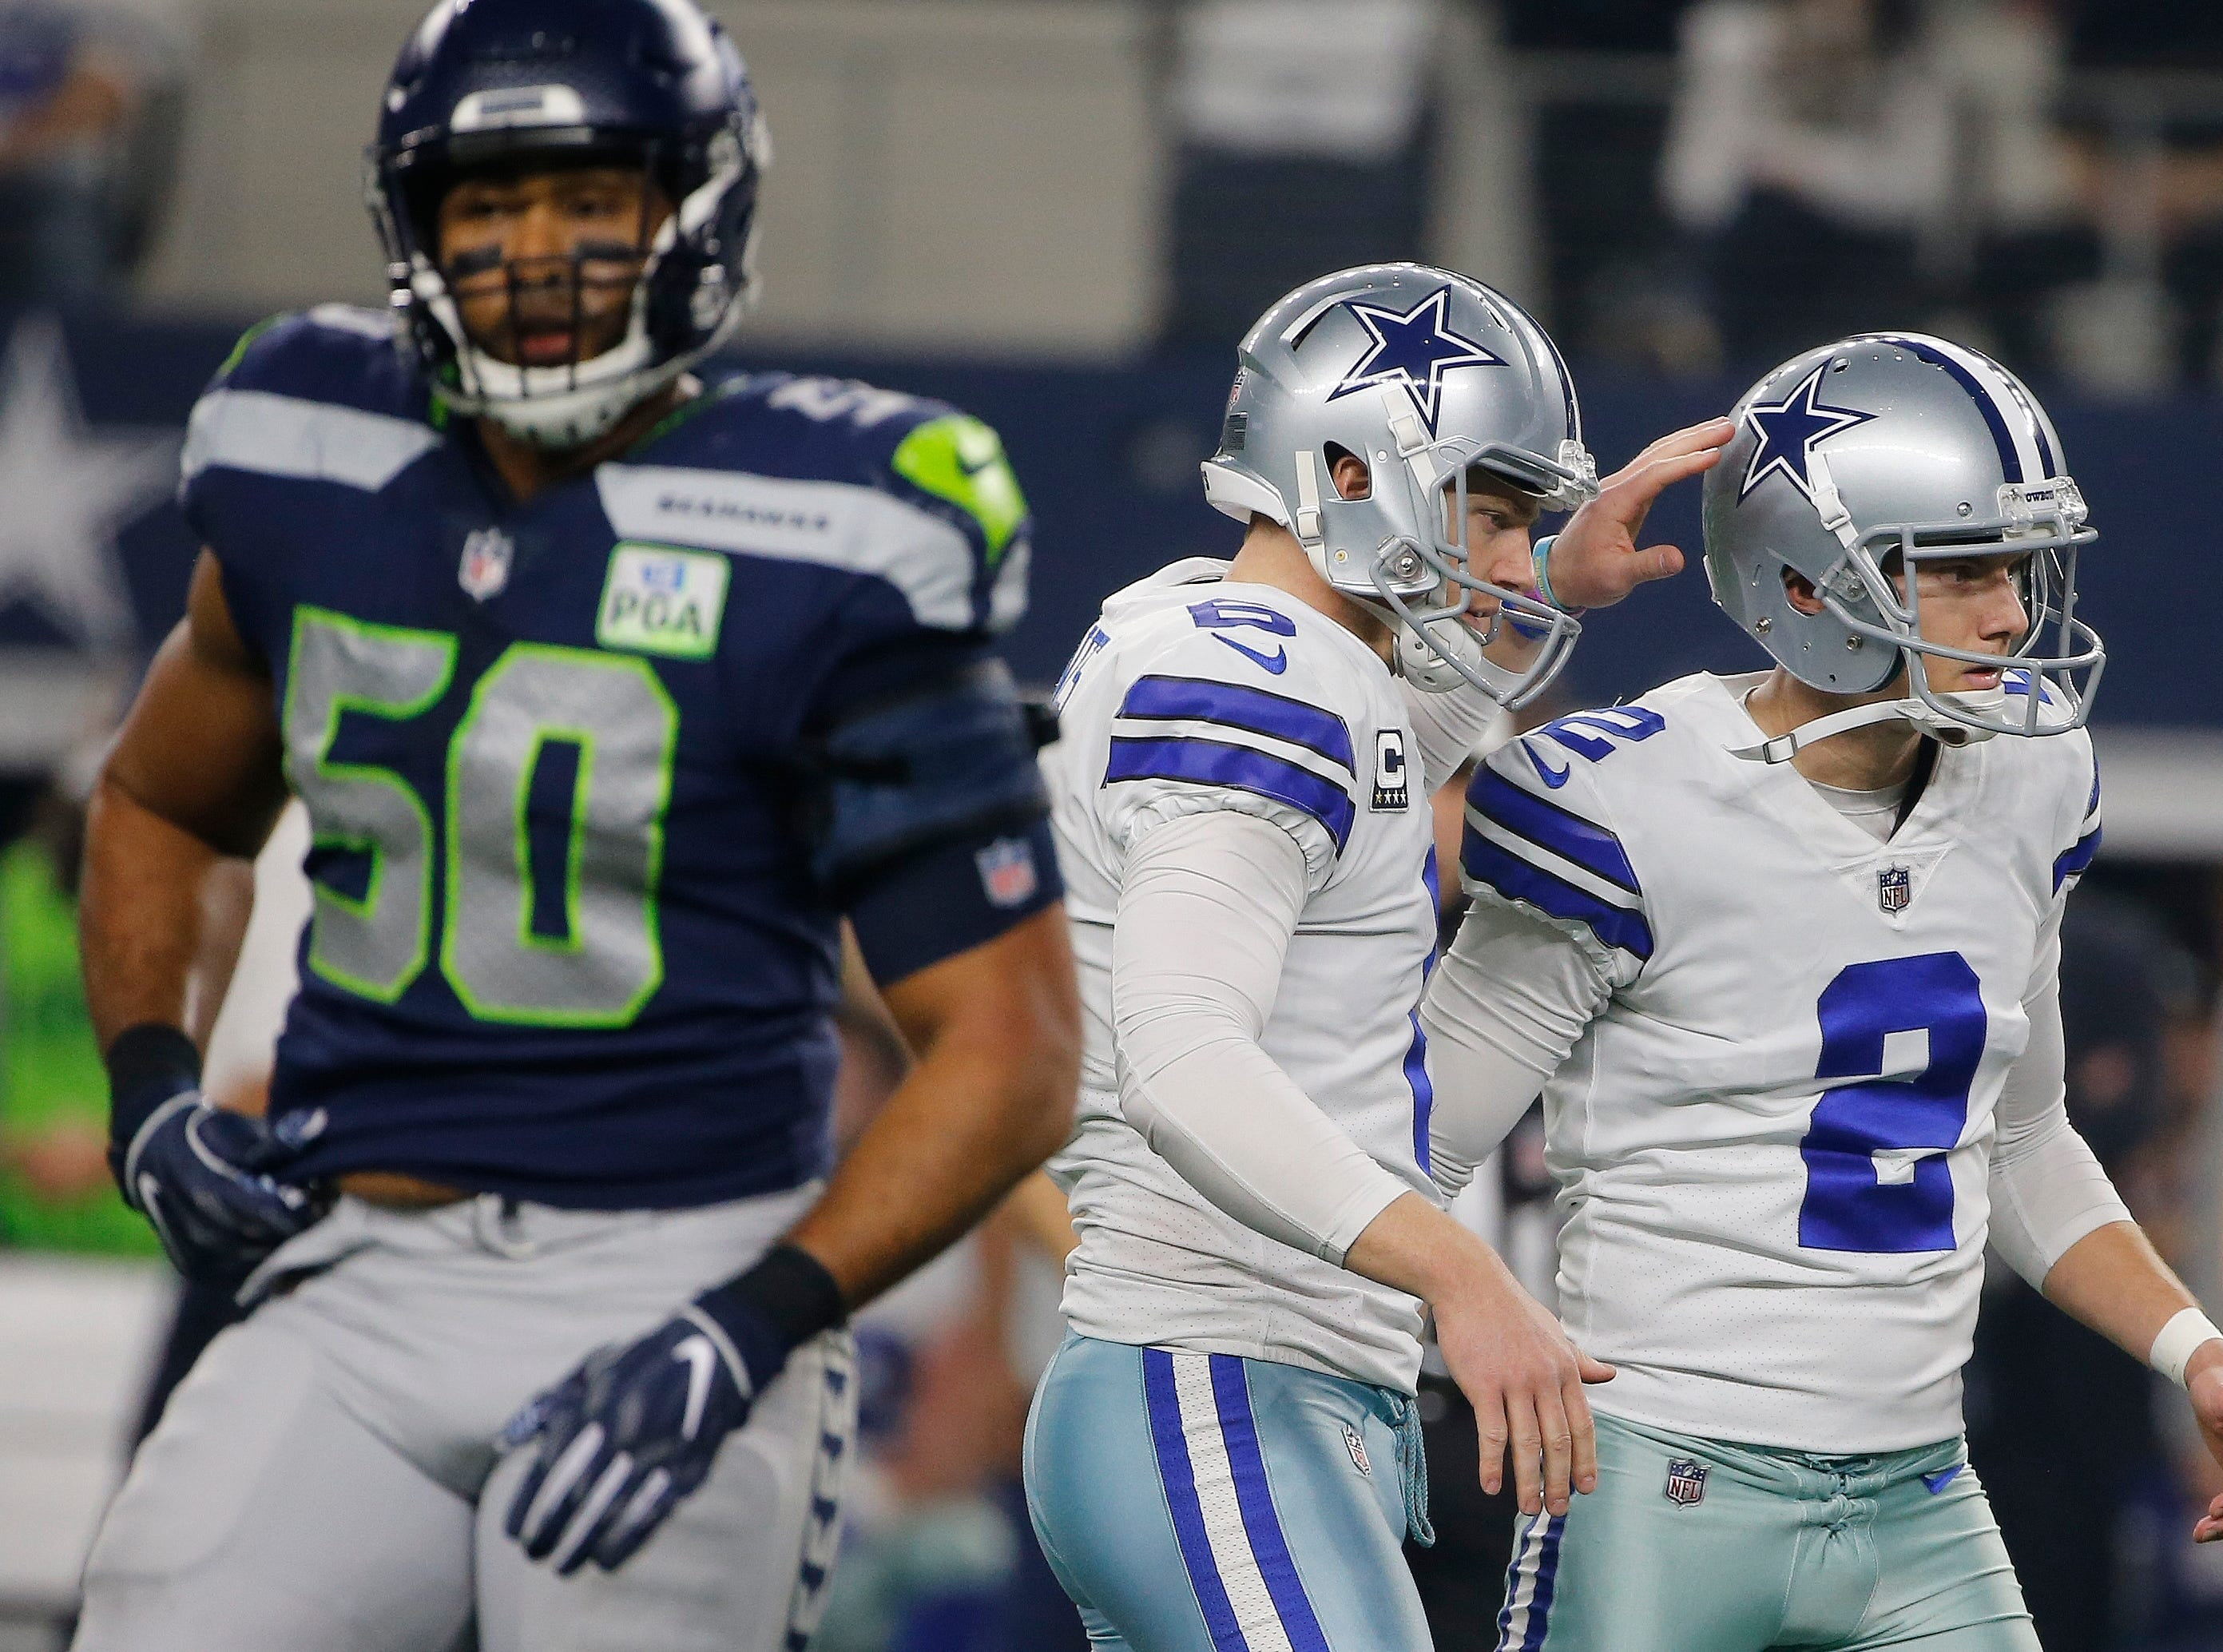 Dallas Cowboys kicker Brett Maher (2) is congratulated after he kicked a field goal against the Seattle Seahawks first half of the NFC wild-card NFL football game in Arlington, Texas, Saturday, Jan. 5, 2019. (AP Photo/Michael Ainsworth)